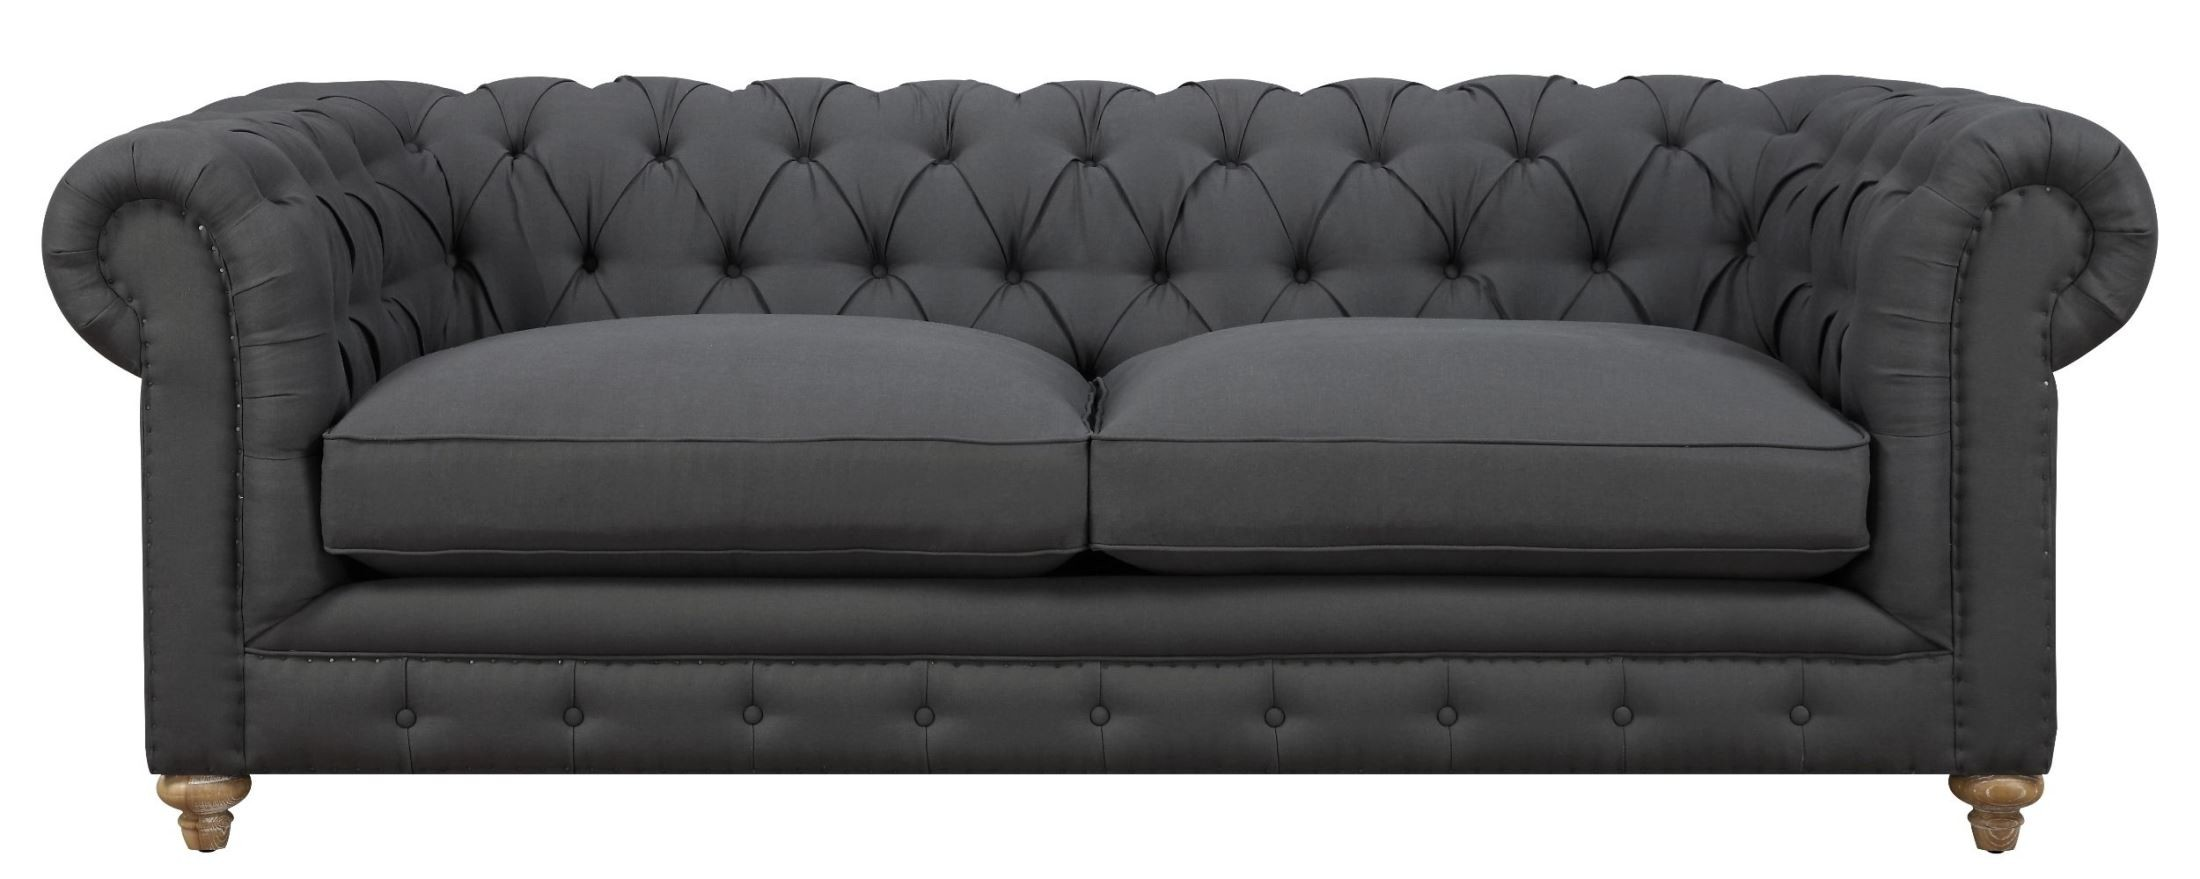 Oxford Gray Linen Sofa From Tov S34 Coleman Furniture